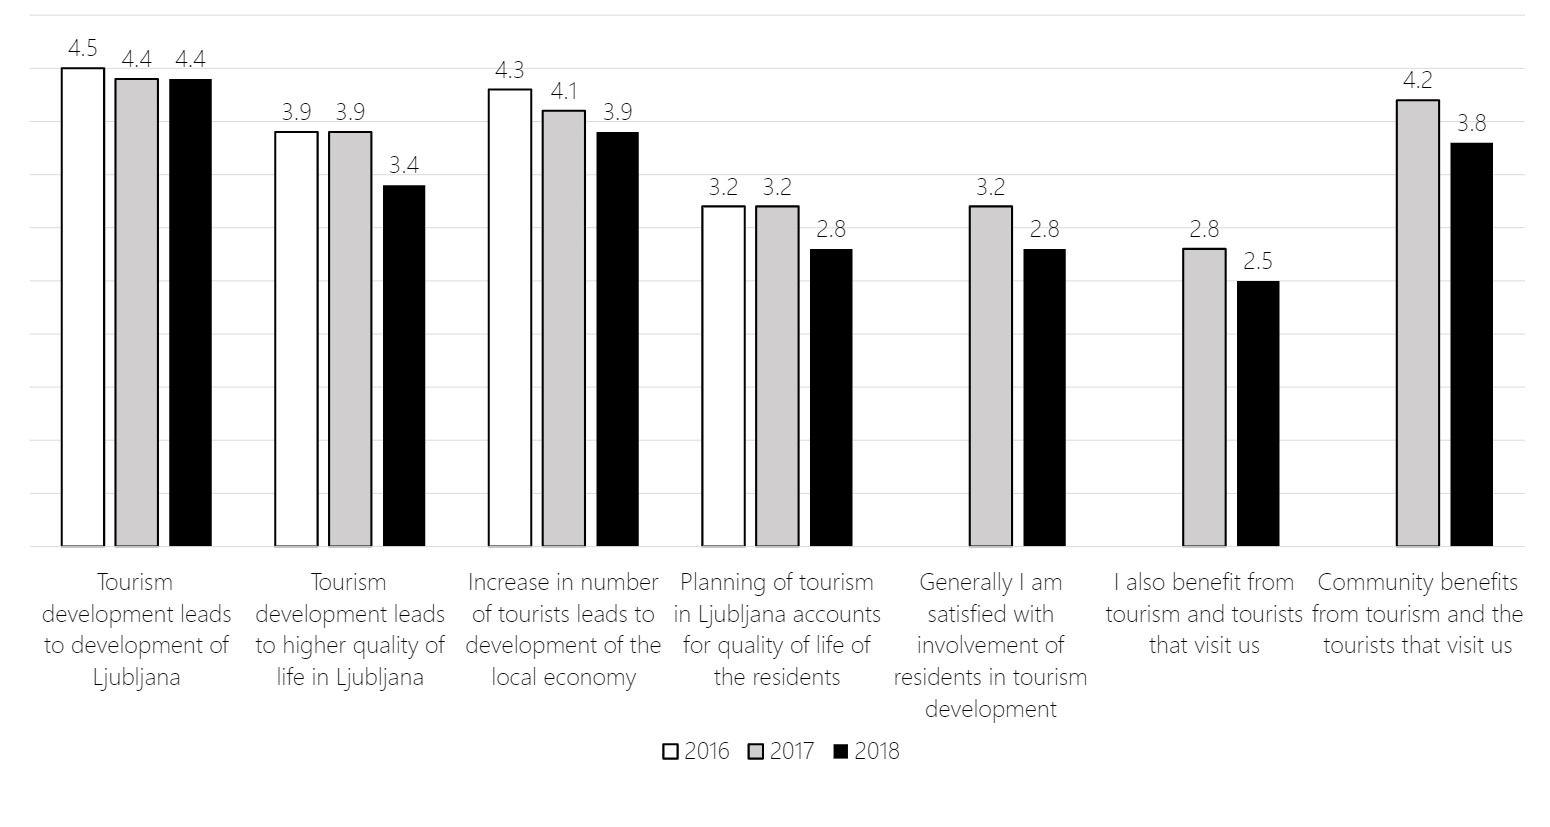 Bar chart showing the decrease in resident satisfaction with tourism development in Ljubljana between 2016 and 2018.